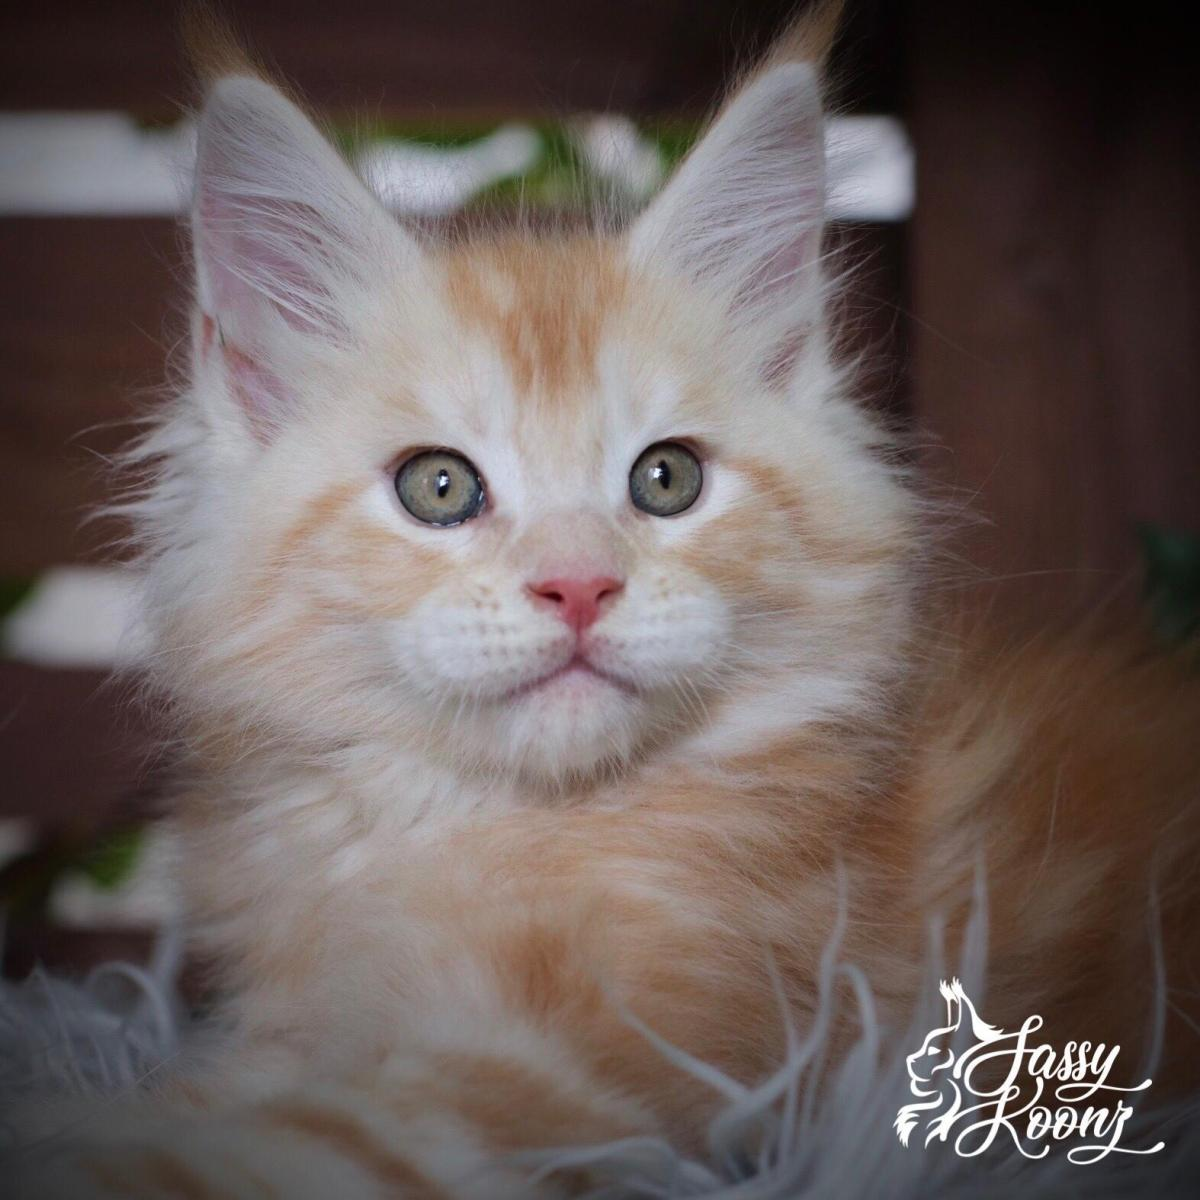 Maine coon kittens for sale with breeding rights